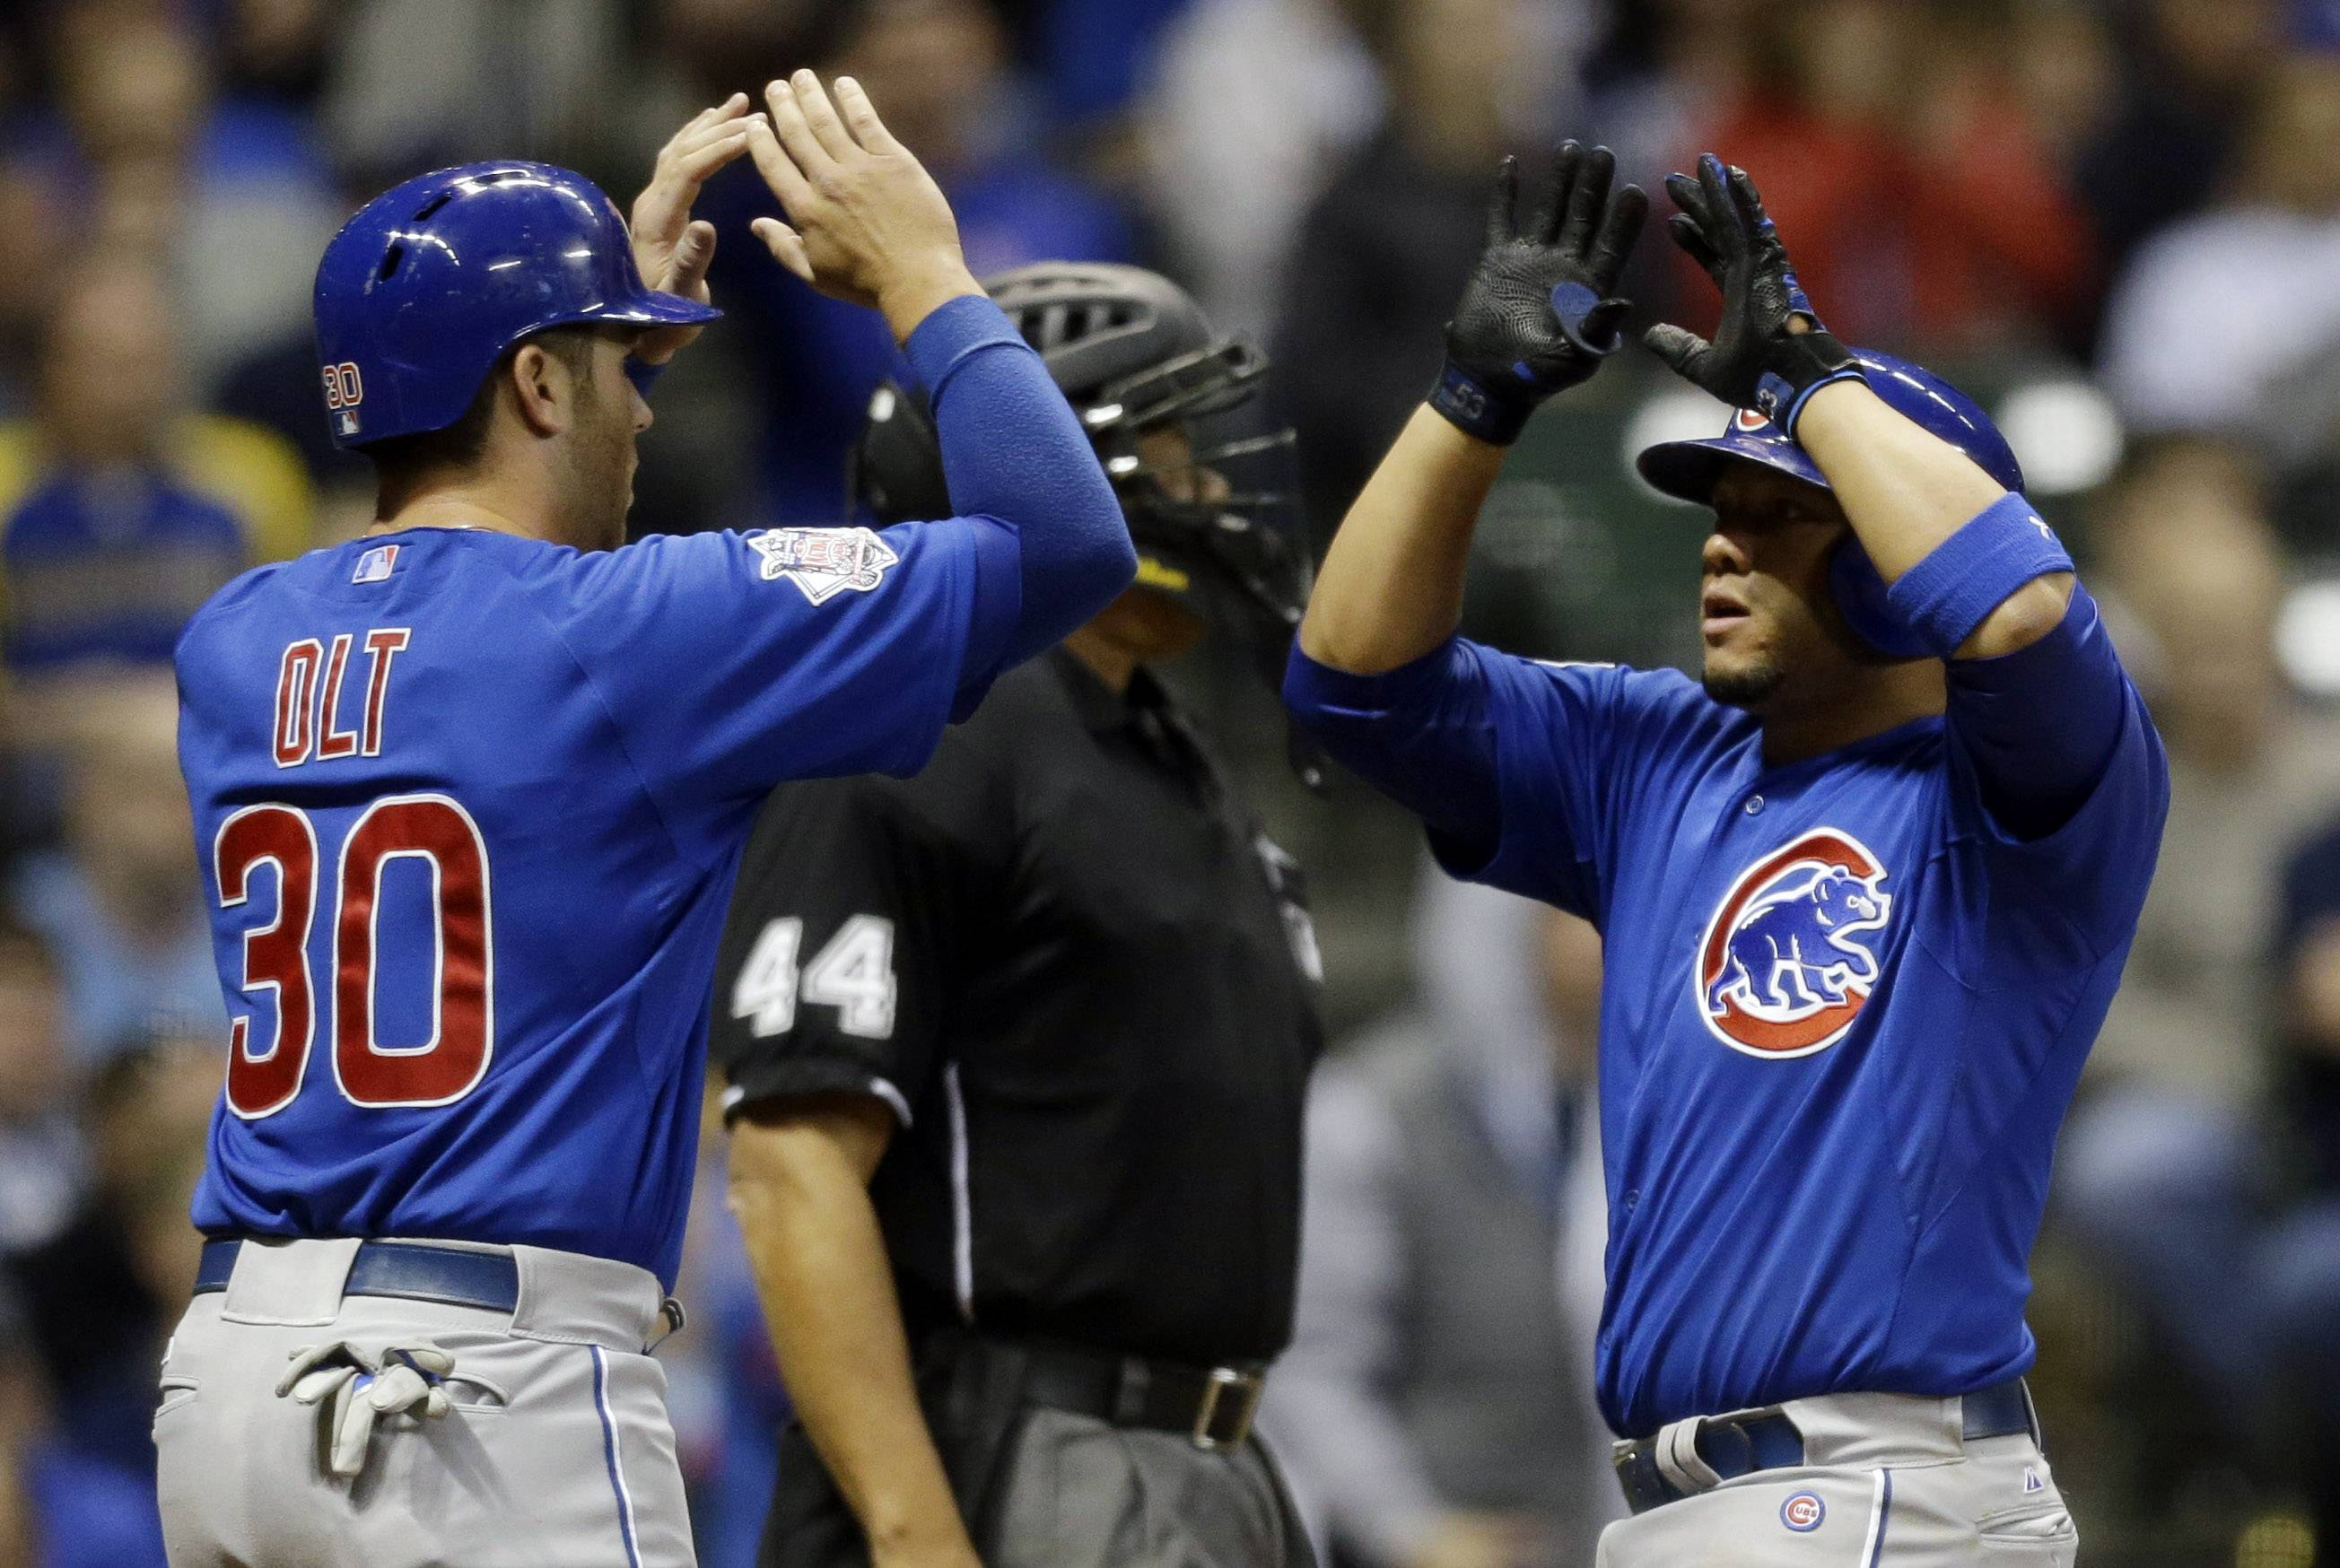 Chicago Cubs' Welington Castillo, right, gets high-fives from Mike Olt (30) after hitting a two-run home run against the Milwaukee Brewers during the eighth inning of a baseball game on Saturday, April 26, 2014, in Milwaukee.